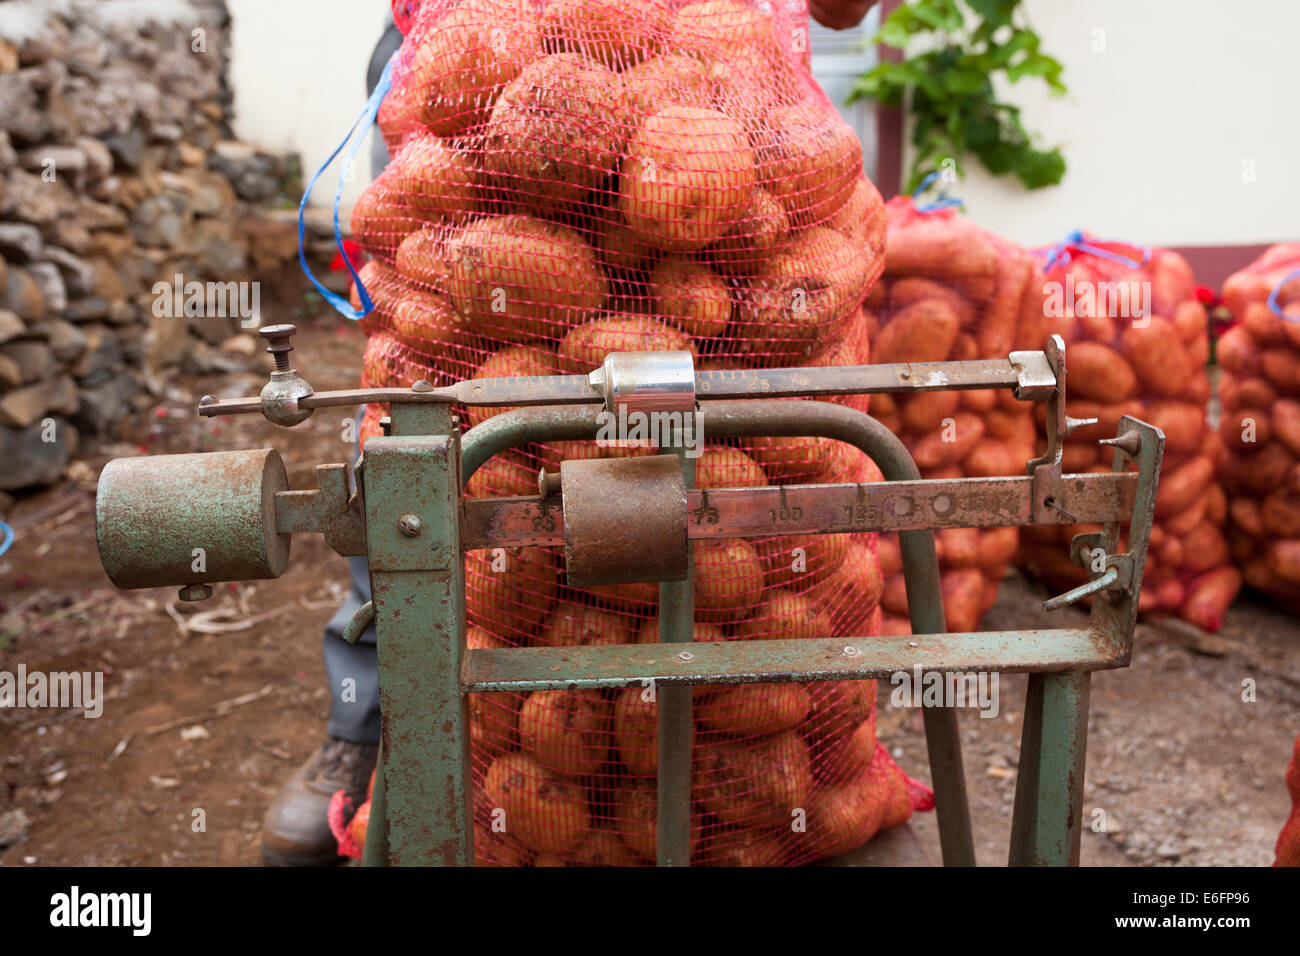 Potatoes from a local farmer are being weighed in leno sacks by a wholesaler's agent in a remote part of Madeira. - Stock Image